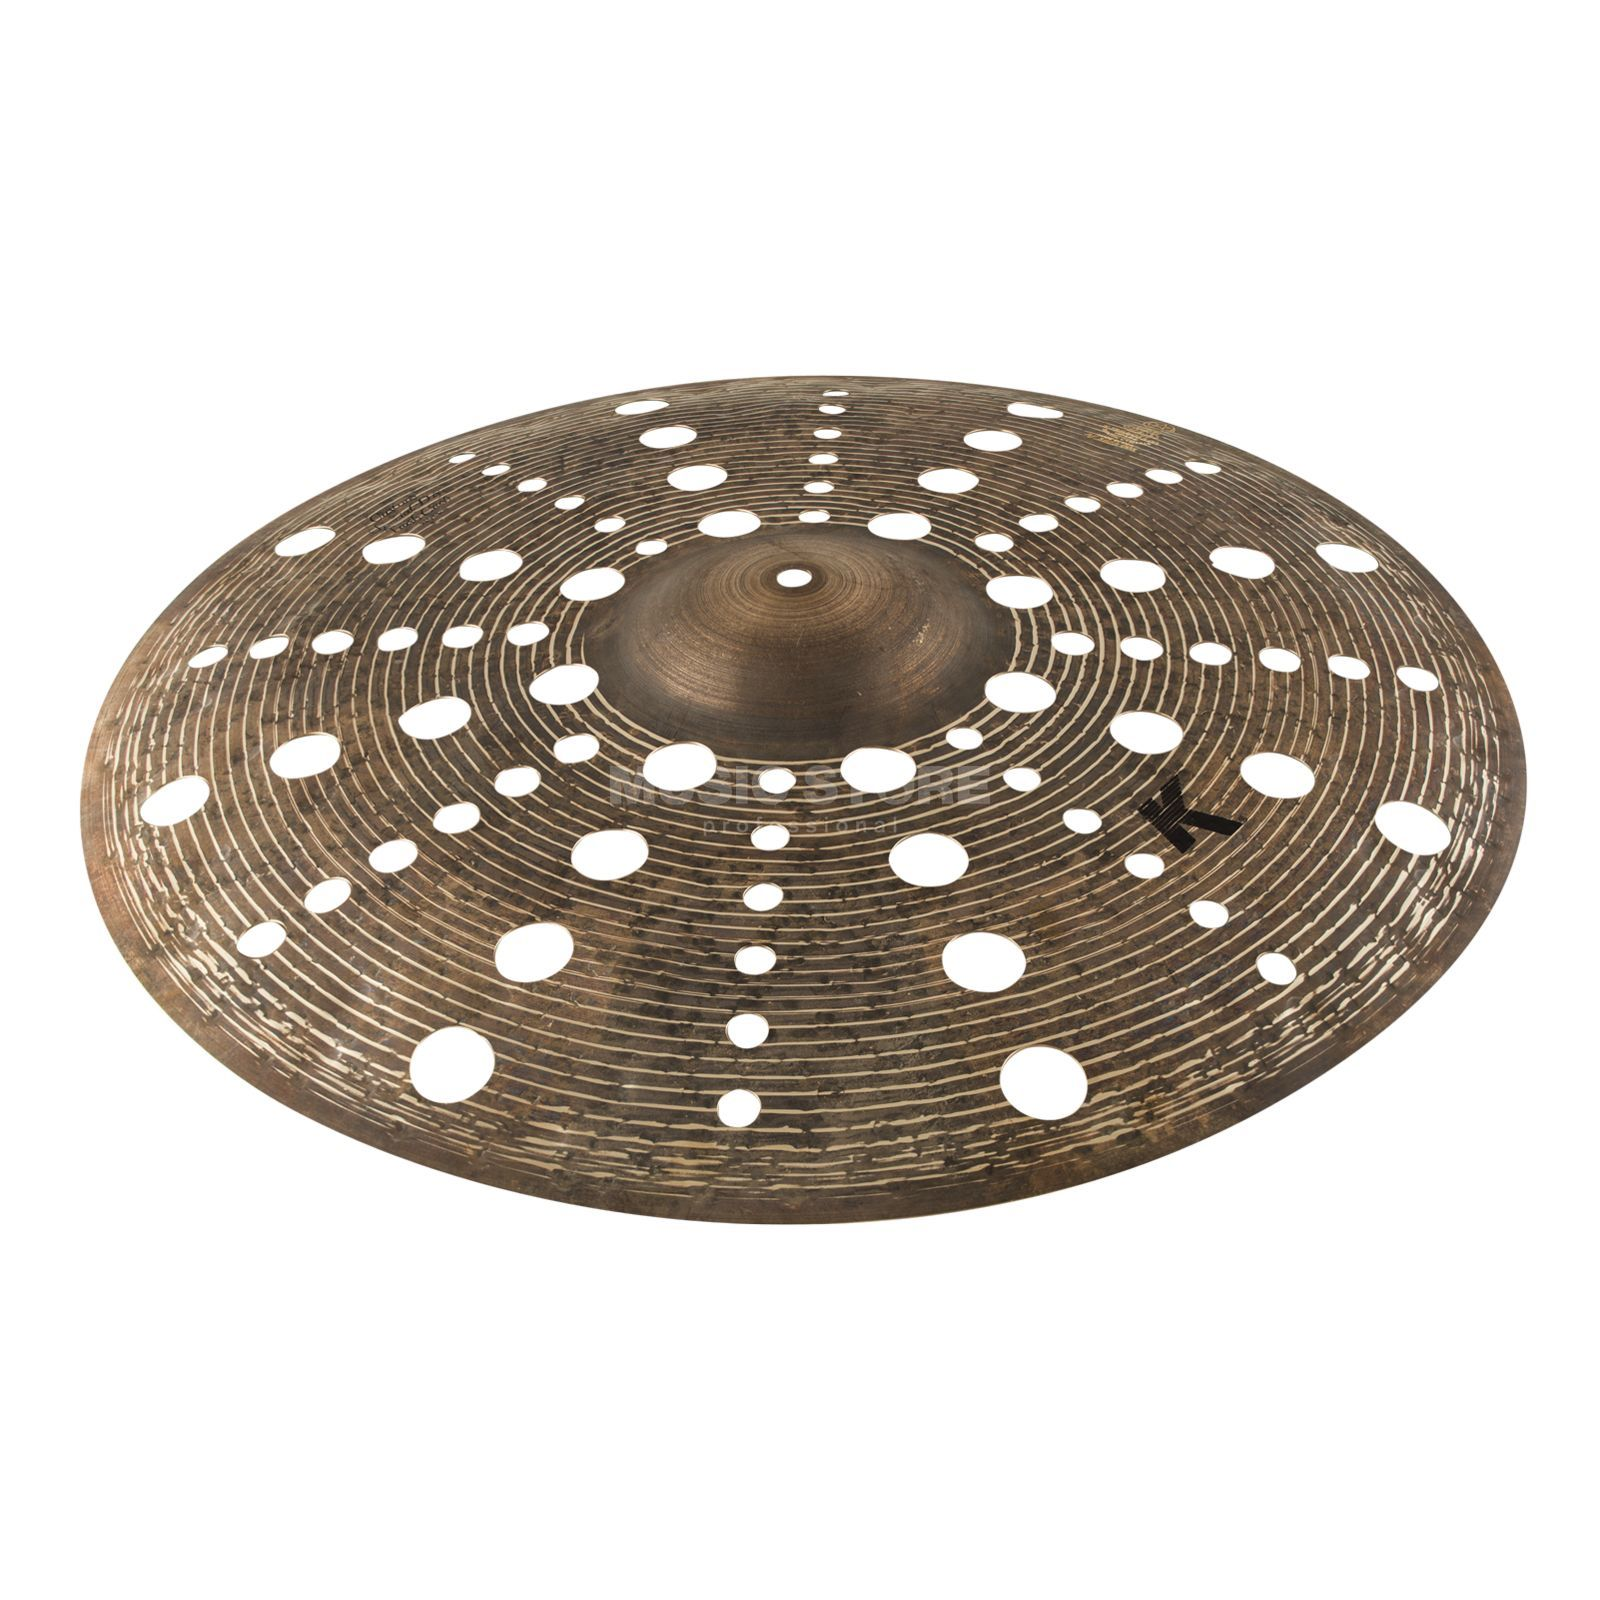 "Zildjian K-Custom Special Dry Trash Crash 21"", Natural Product Image"